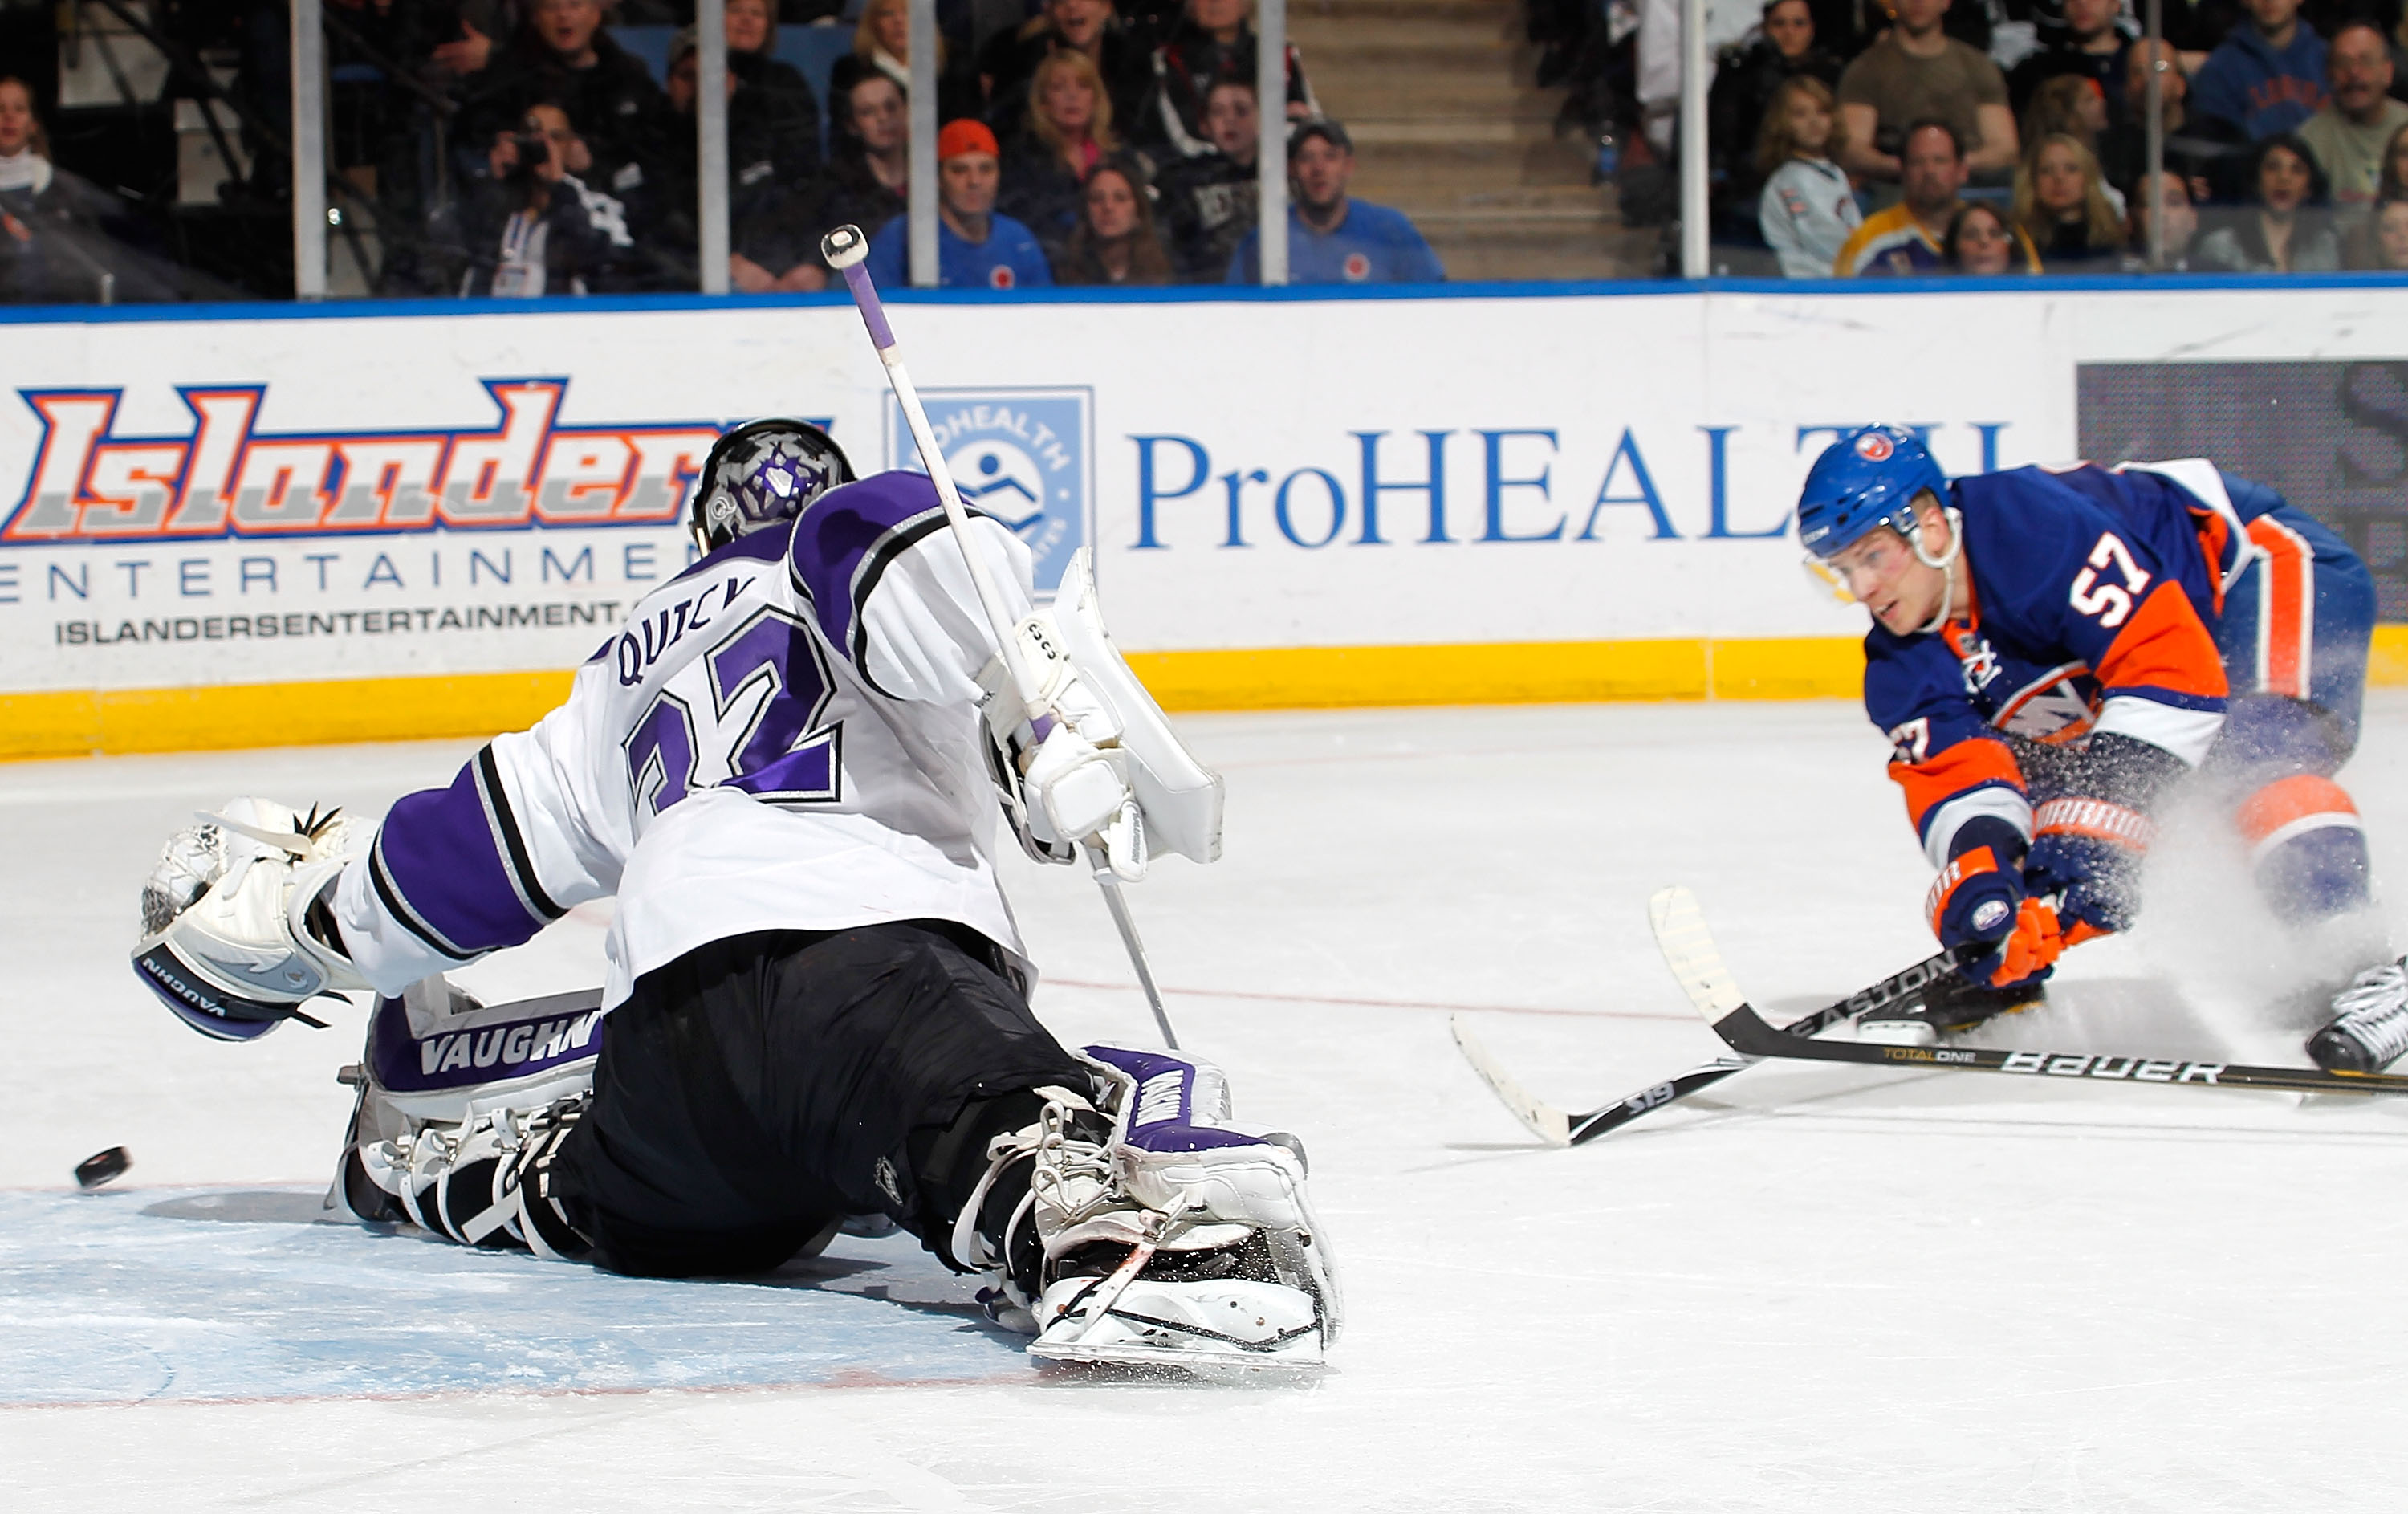 UNIONDALE, NY - FEBRUARY 19:  Goalie Jonathan Quick #32 of the Los Angeles Kings makes a split save on a shot by Blake Comeau #57 of the New York Islanders late in the second period of an NHL hockey game at the Nassau Coliseum on February 19, 2011 in Unio